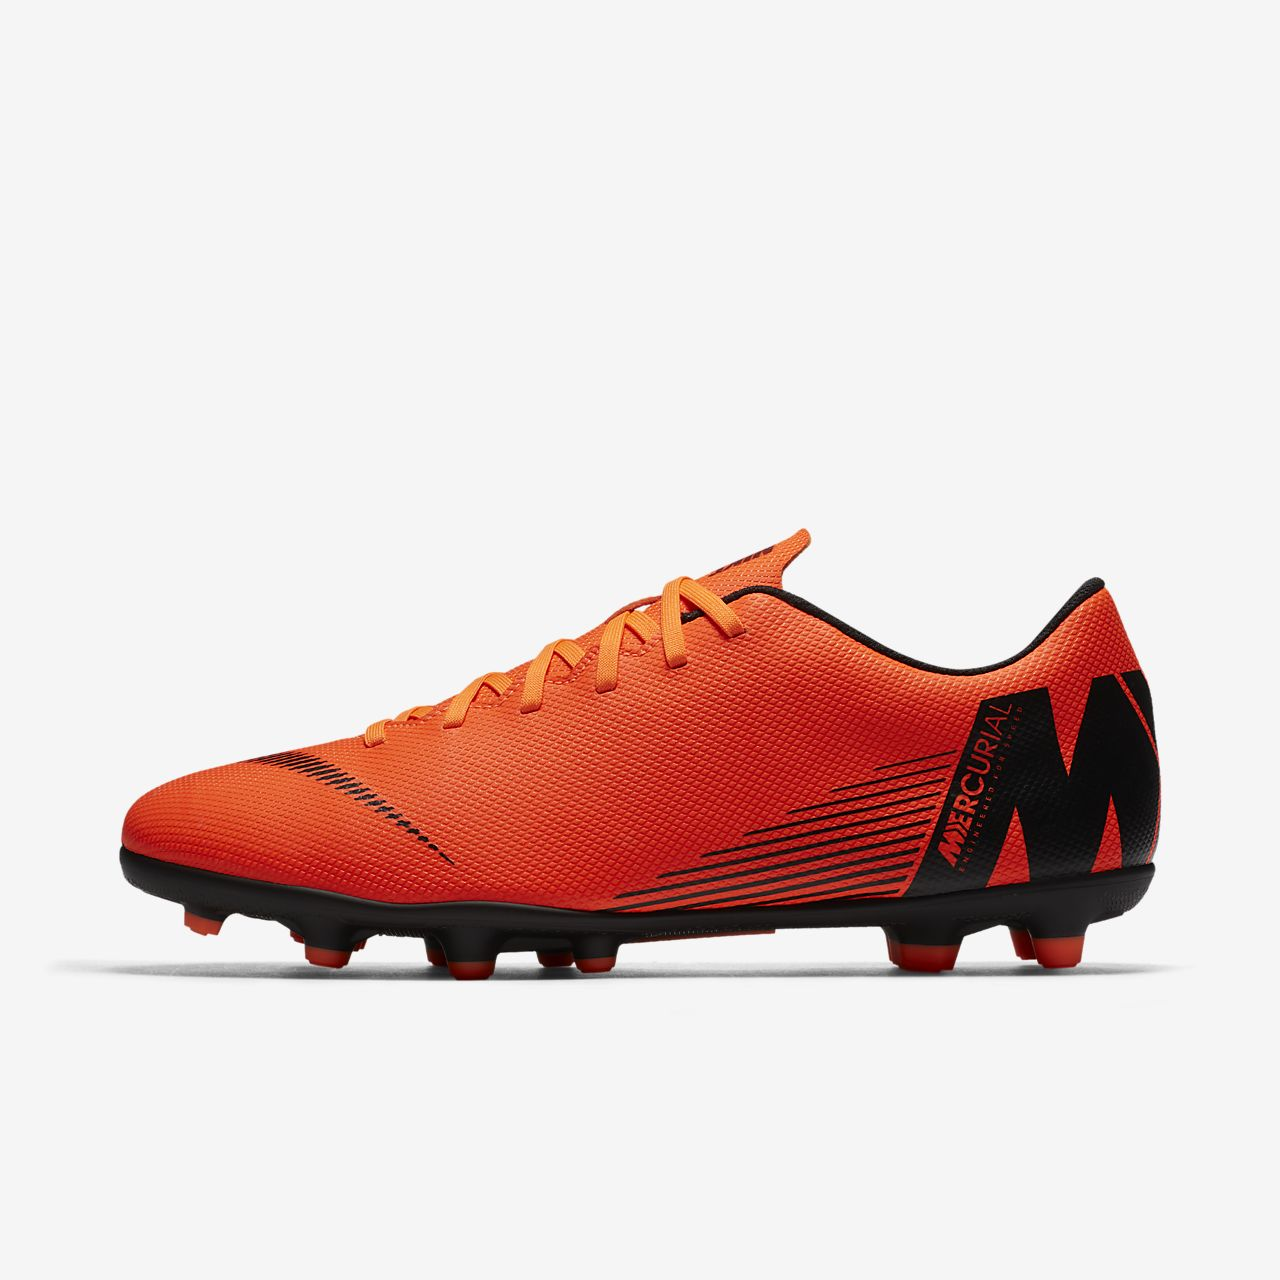 Chaussures Nike Mercurial Vapor XII blanches homme RwnVHa8V1